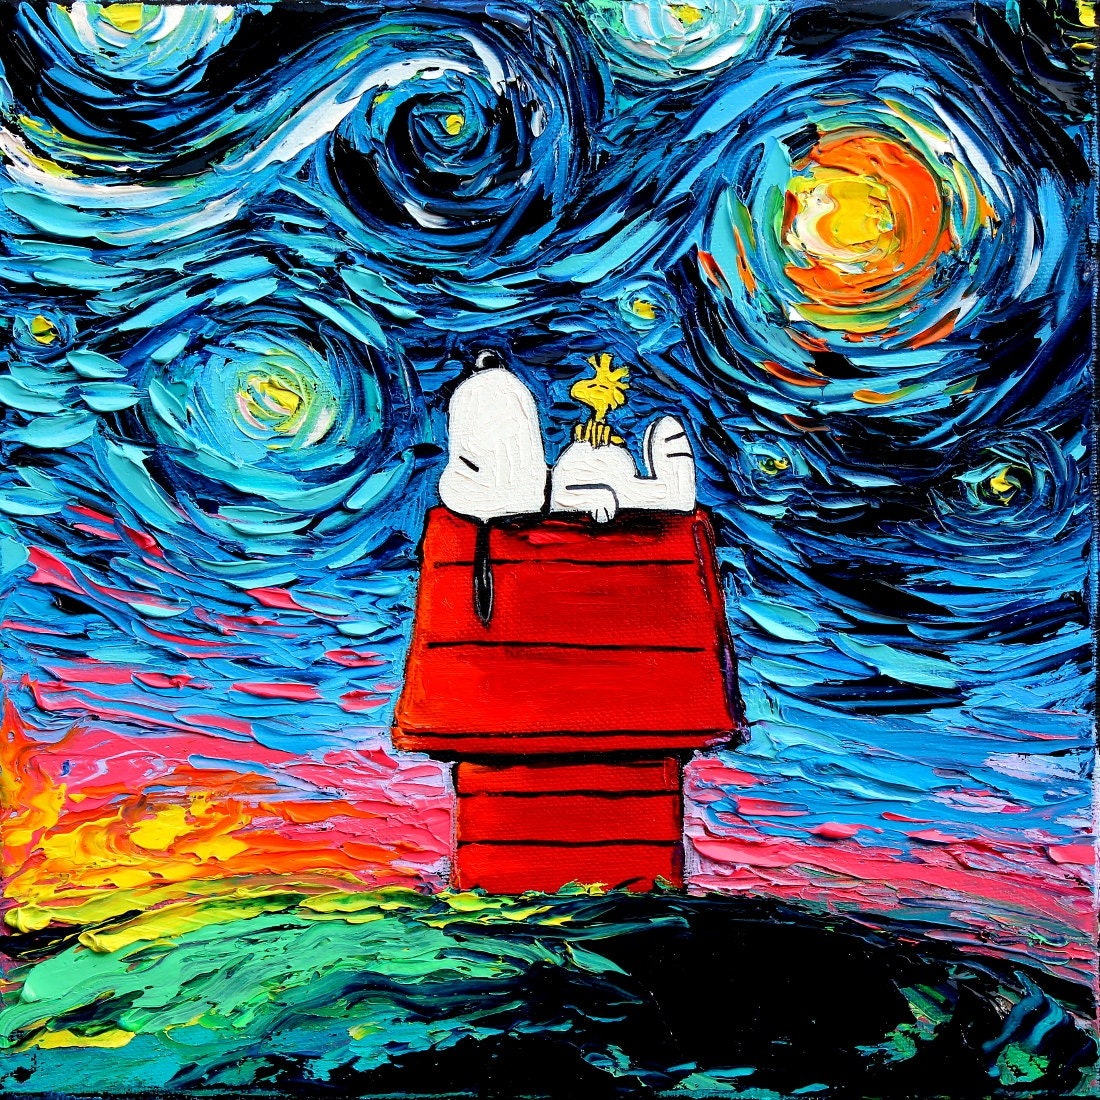 snoopy art peanuts cartoon starry night print van gogh never